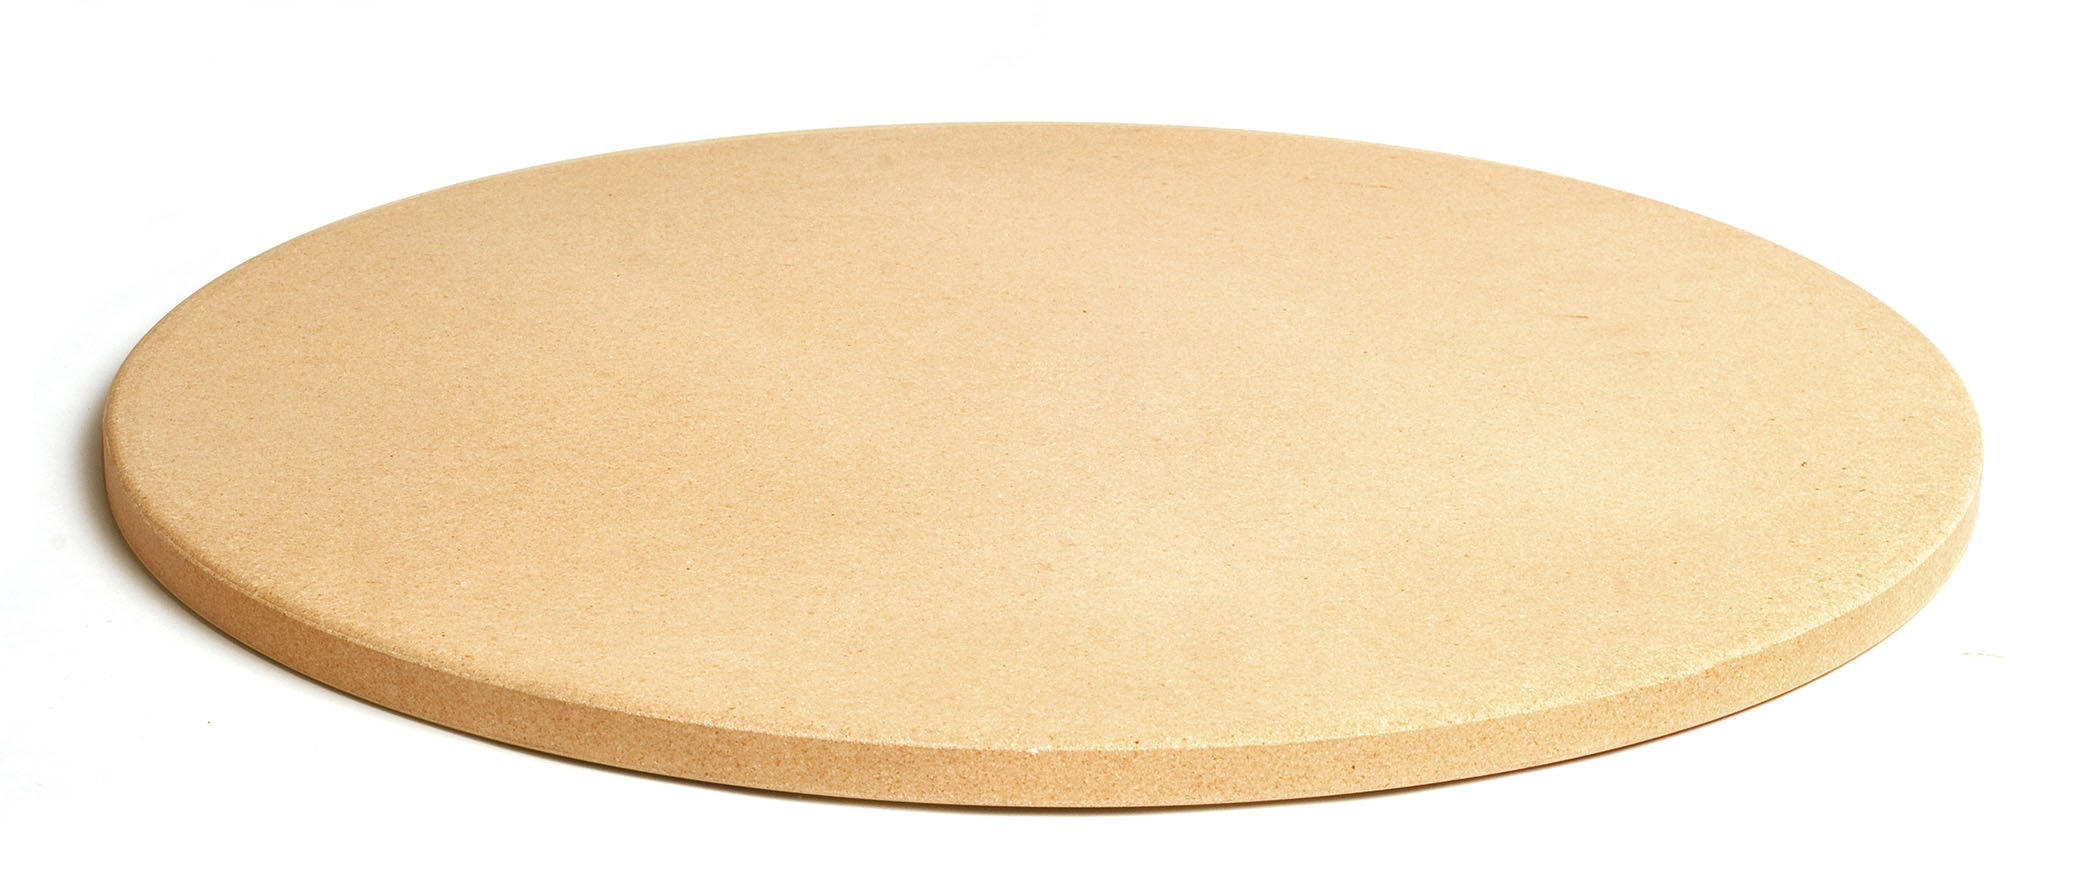 Pizzacraft 16.5'' Round ThermaBond Baking/Pizza Stone - for Oven or Grill - PC9898 by Pizzacraft